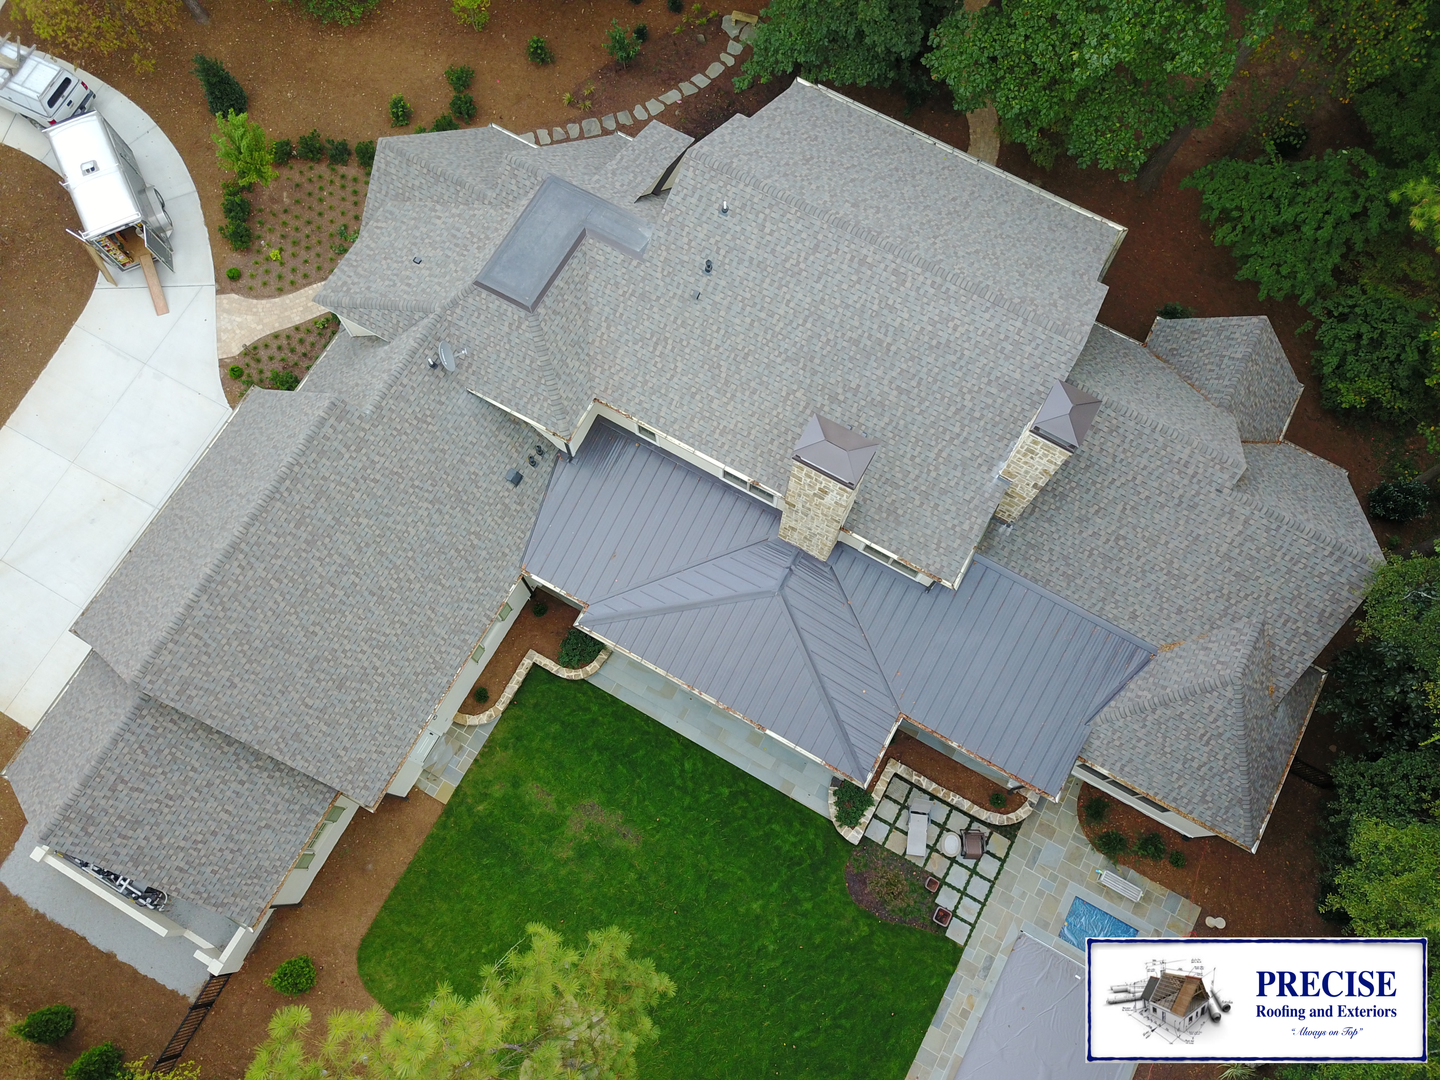 Precise Roofing And Exteriors Raleigh Nc Residential Services Roofing Repairs Siding Gutters Painting